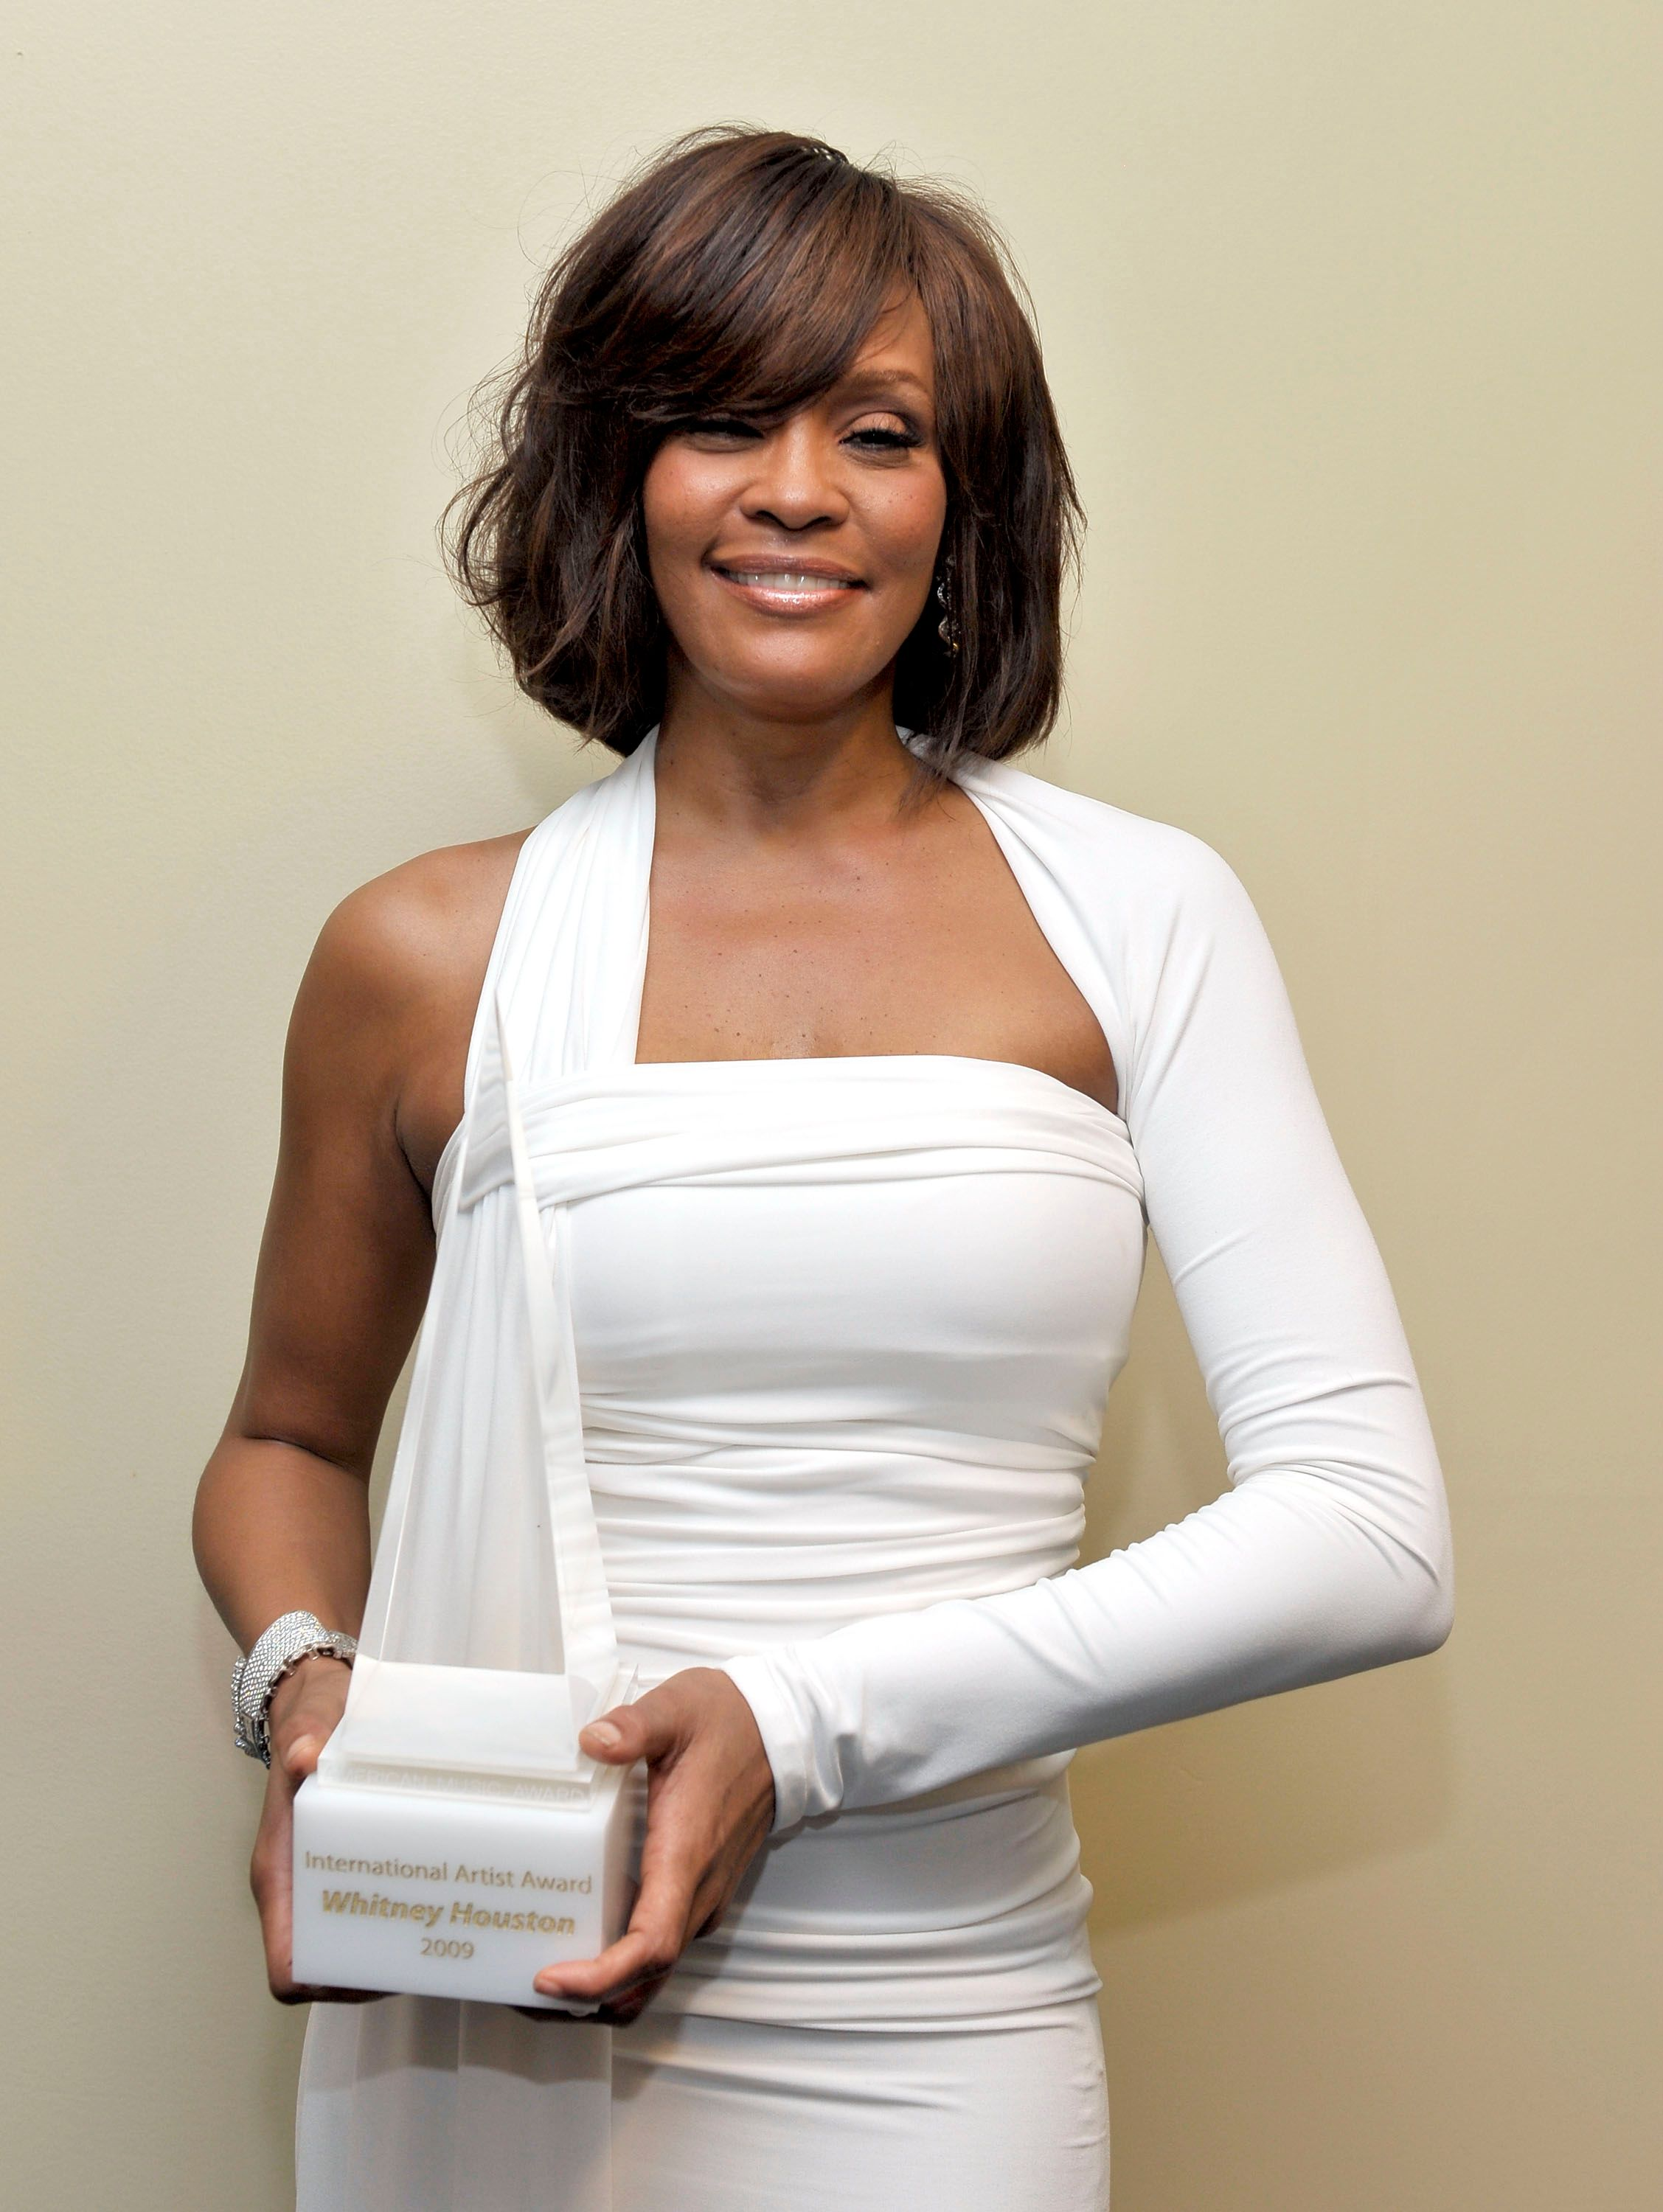 Late singer Whitney Houston posed with her Favorite Artist Award backstage at the 2009 American Music Awards at Nokia Theatre L.A. Live on November 22, 2009 in Los Angeles, California | Photo: Getty Images